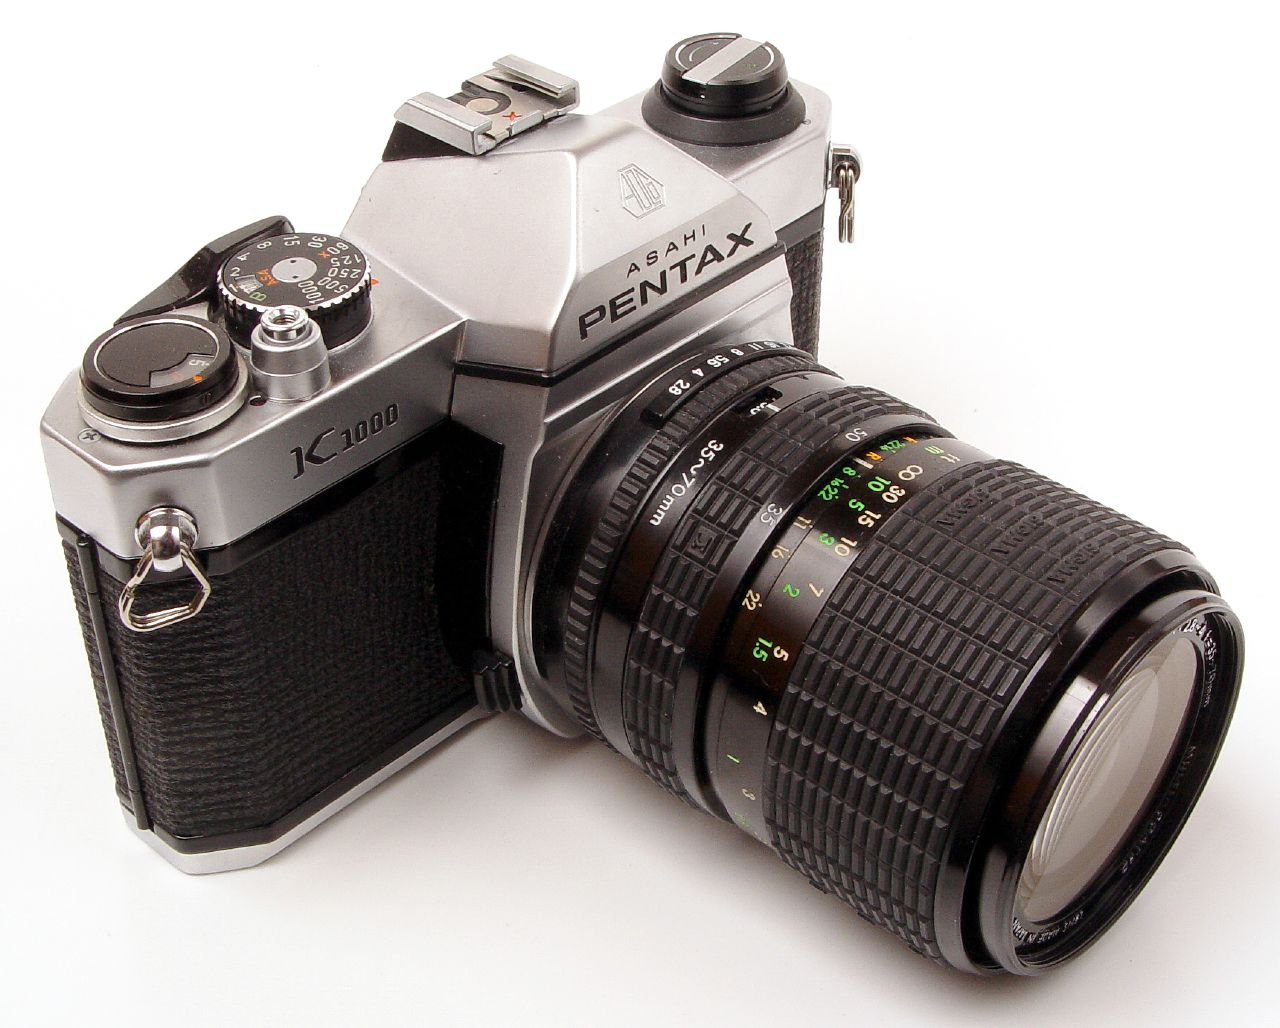 Pentax K1000 Wikipedia Video Camera Diagram Labeled Chapter 4 The